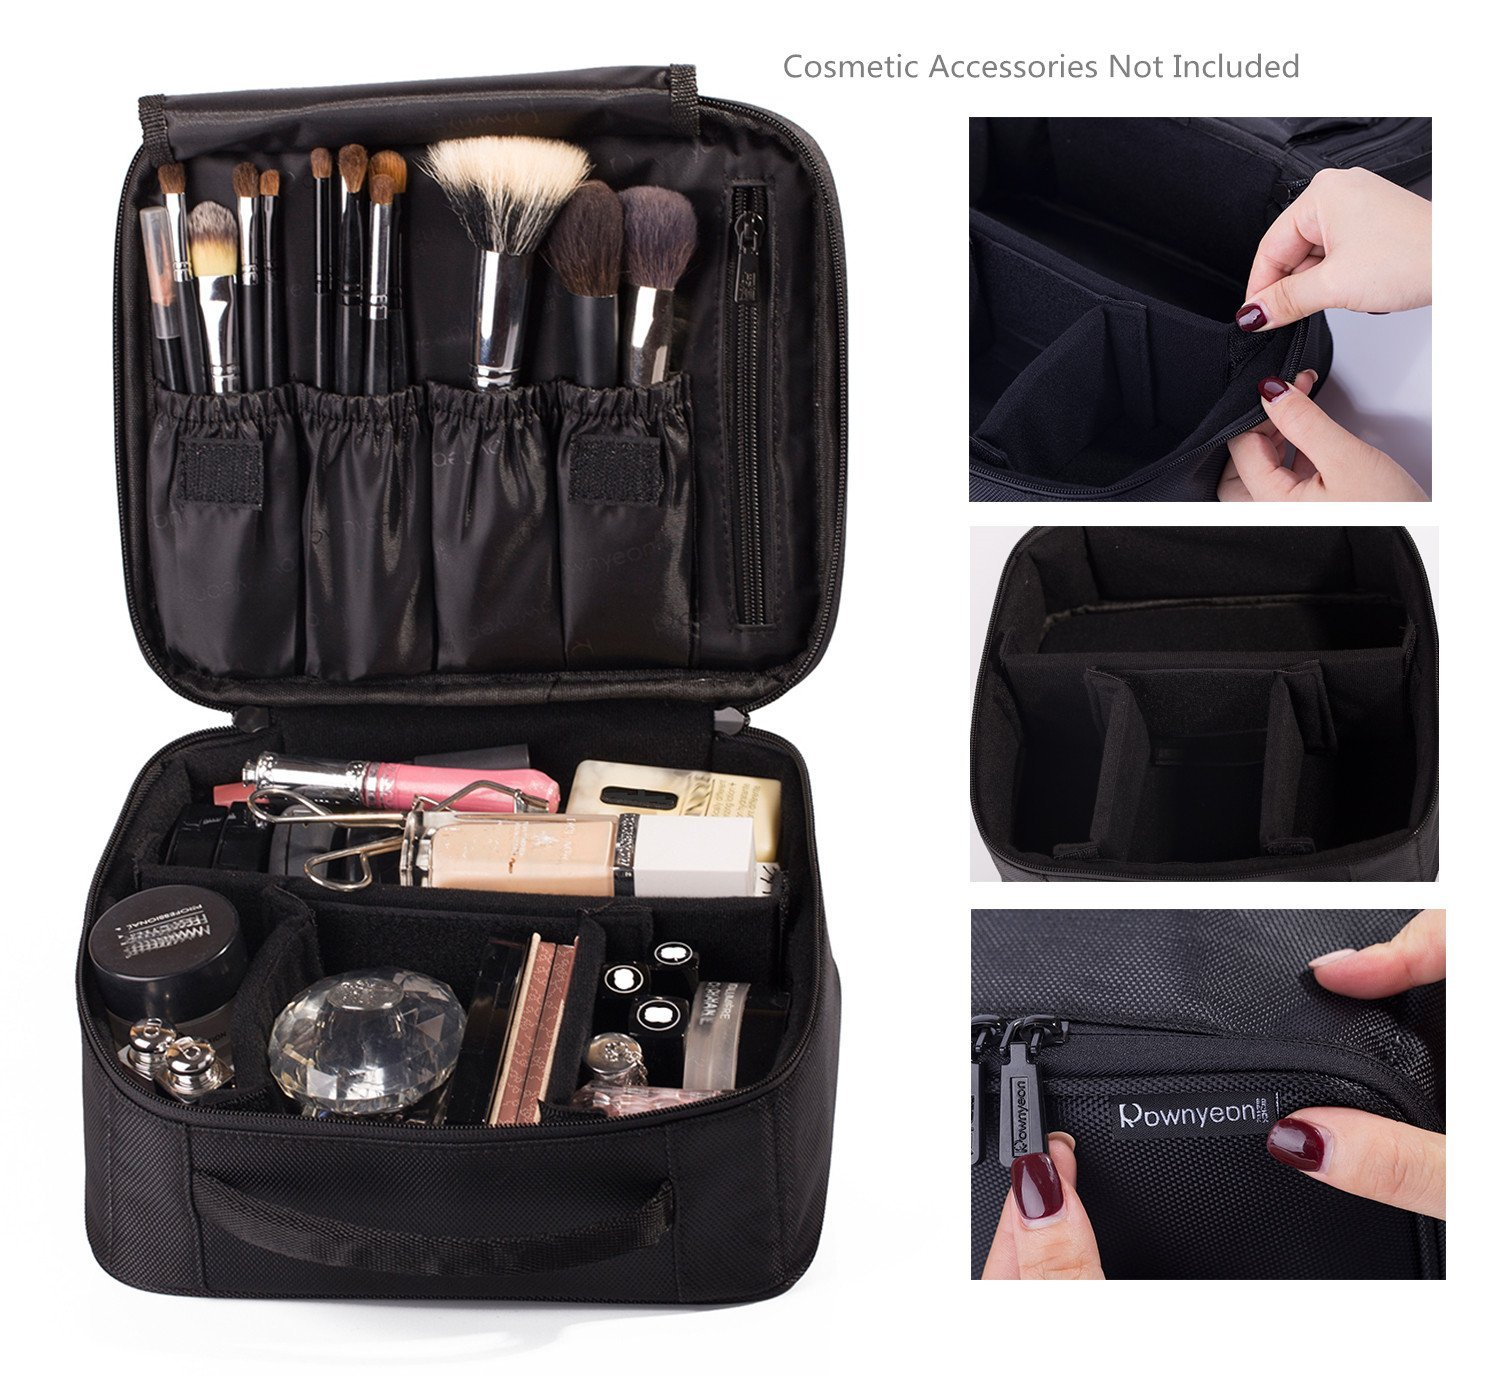 Review of the Best Travel Makeup Bag—Rownyeon Portable Travel Makeup Bag